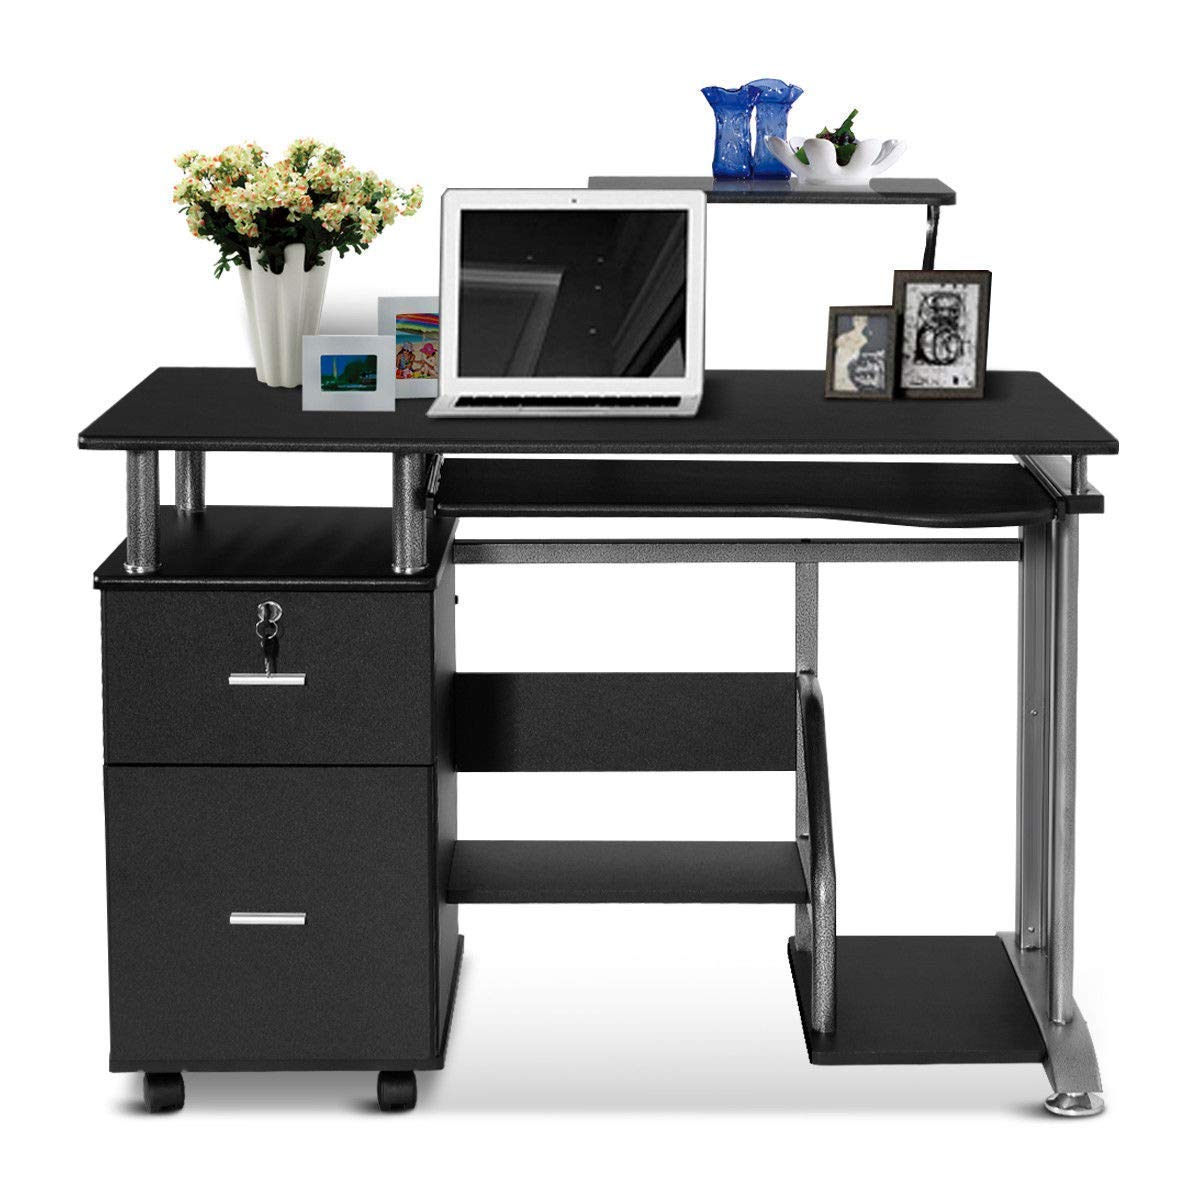 Tangkula Computer Desk, Home Office Desk, Computer Workstation, Study Writing Desk with Storage Drawer and Pull-Out Keyboard Tray, Compact Laptop PC Workstation by Tangkula